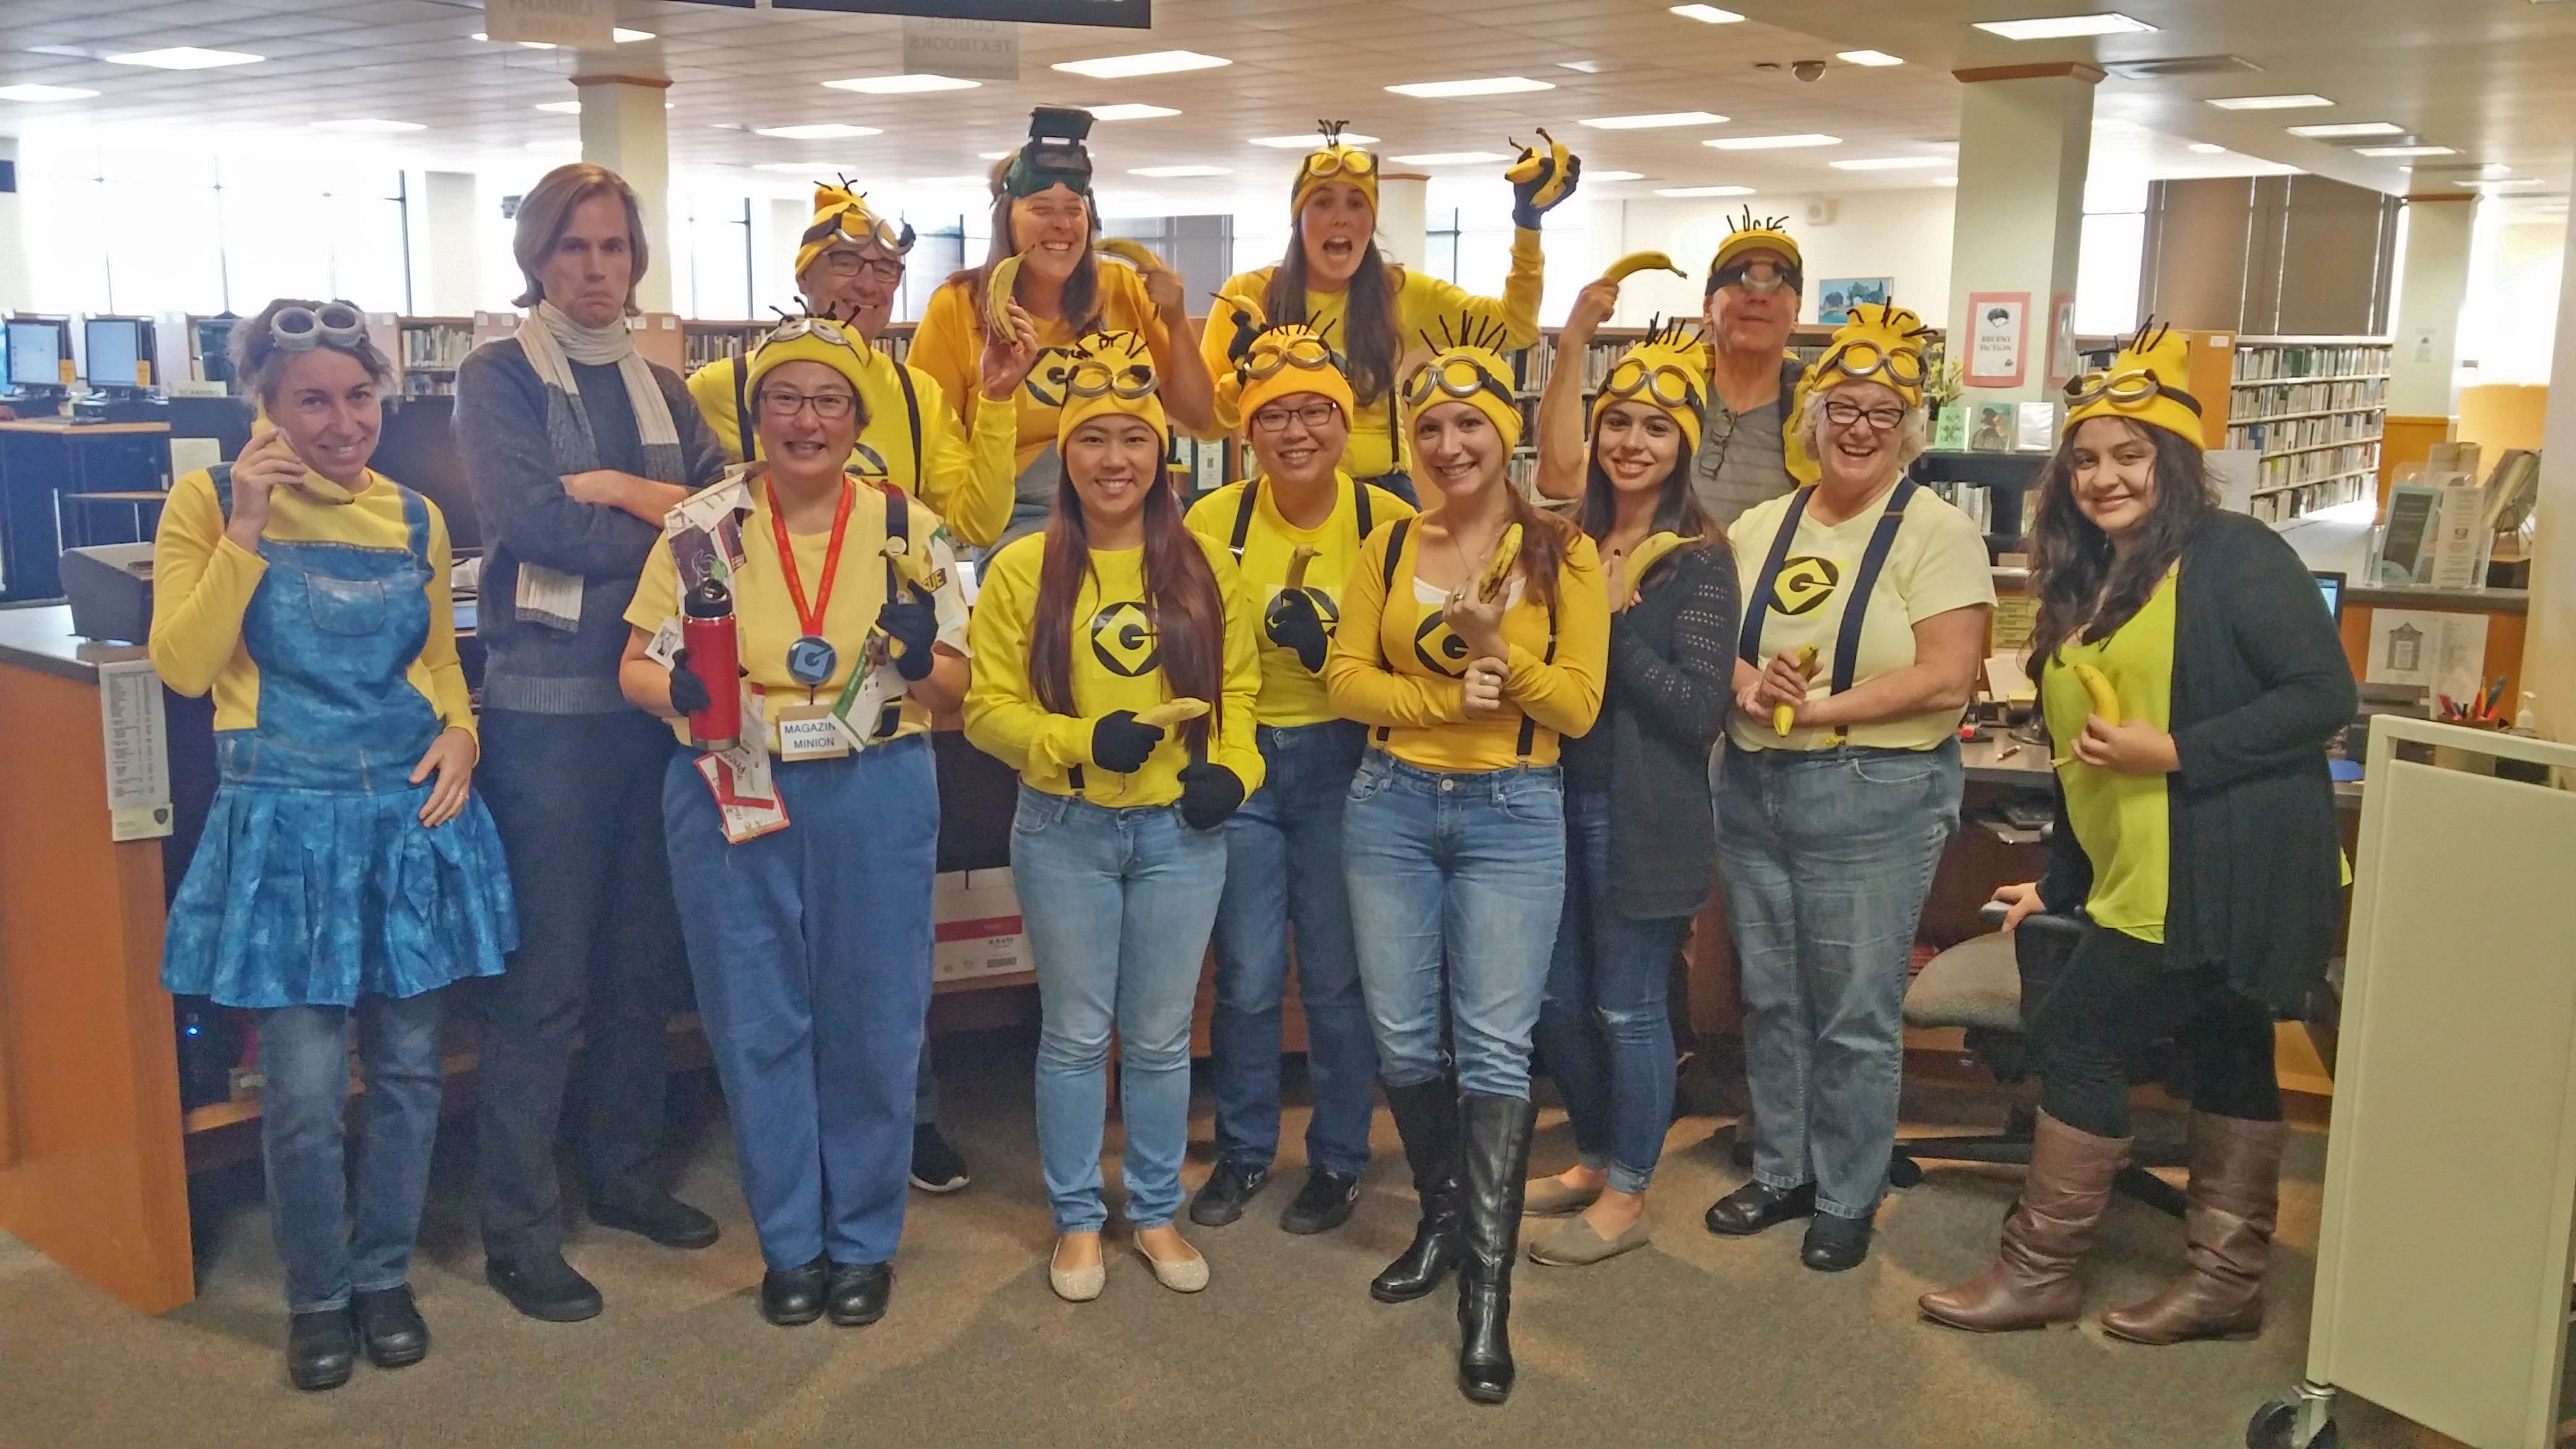 Dressing as Minions and Gru from movies. The team costume idea was suggested by the staff member wearing Minion scarf.  sc 1 st  Council of Chief Librarians & Skyline College | Council of Chief Librarians - California Community ...